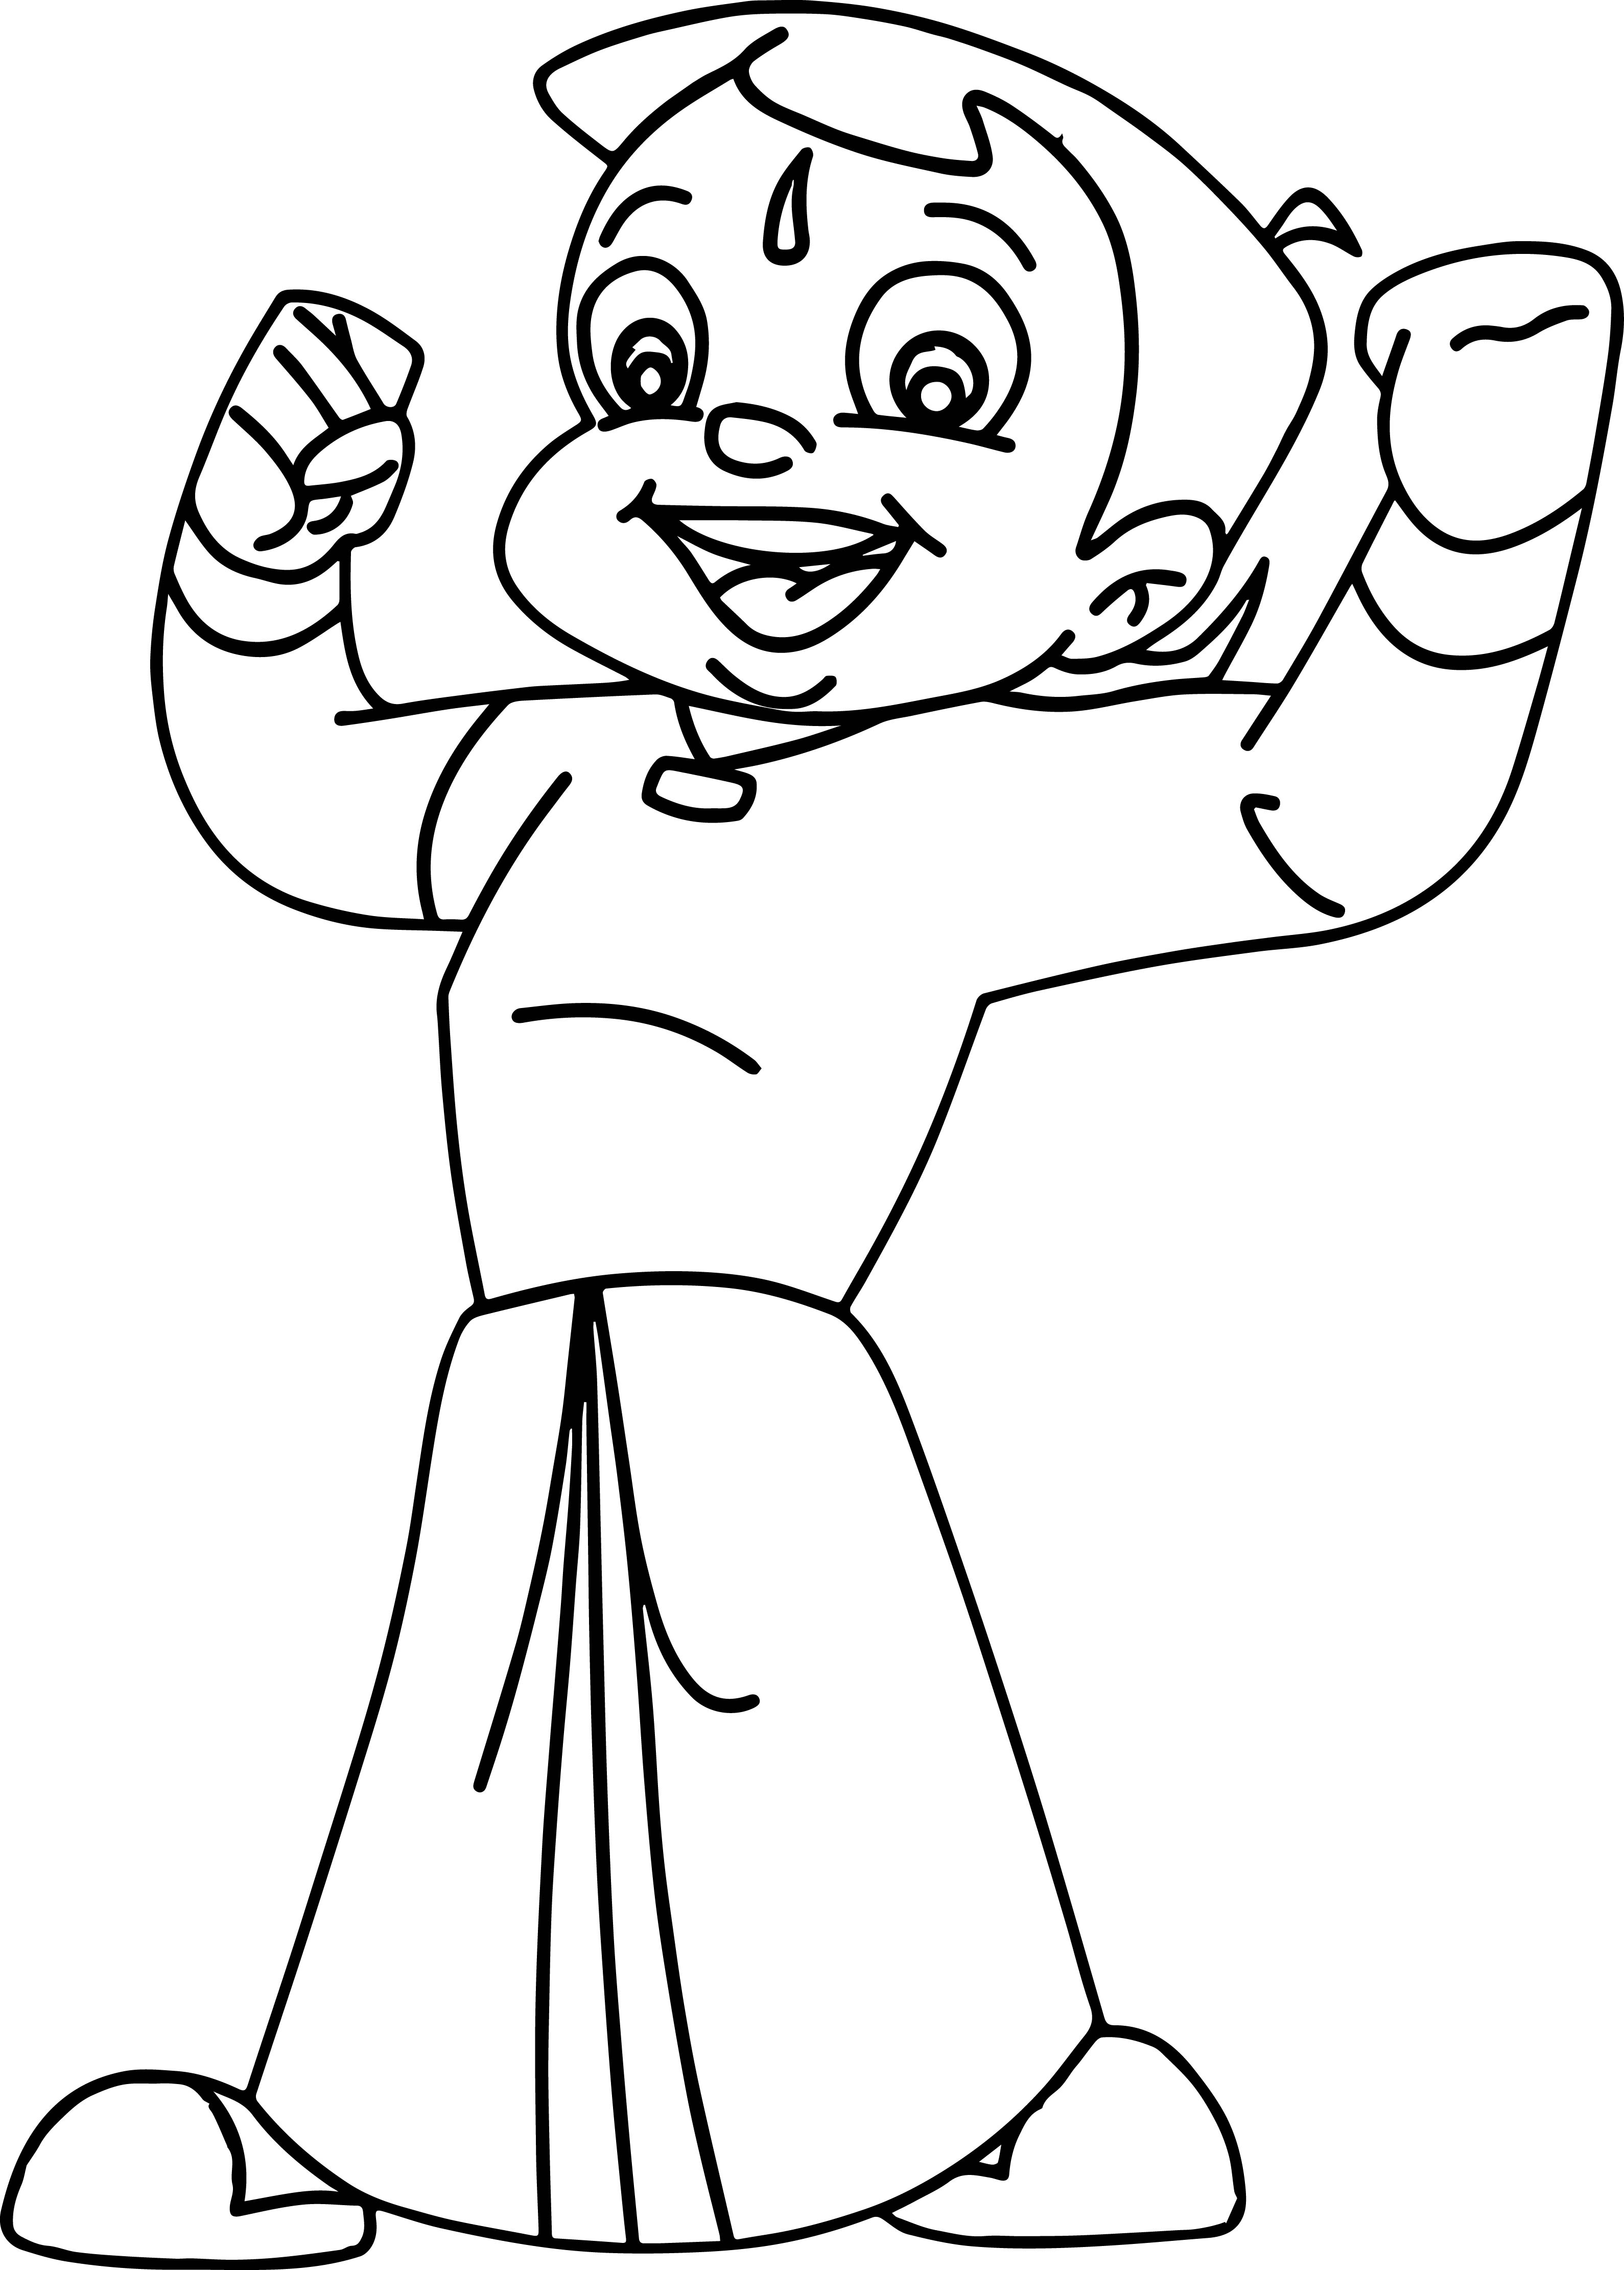 Chhota Bheem Strong Coloring Pages